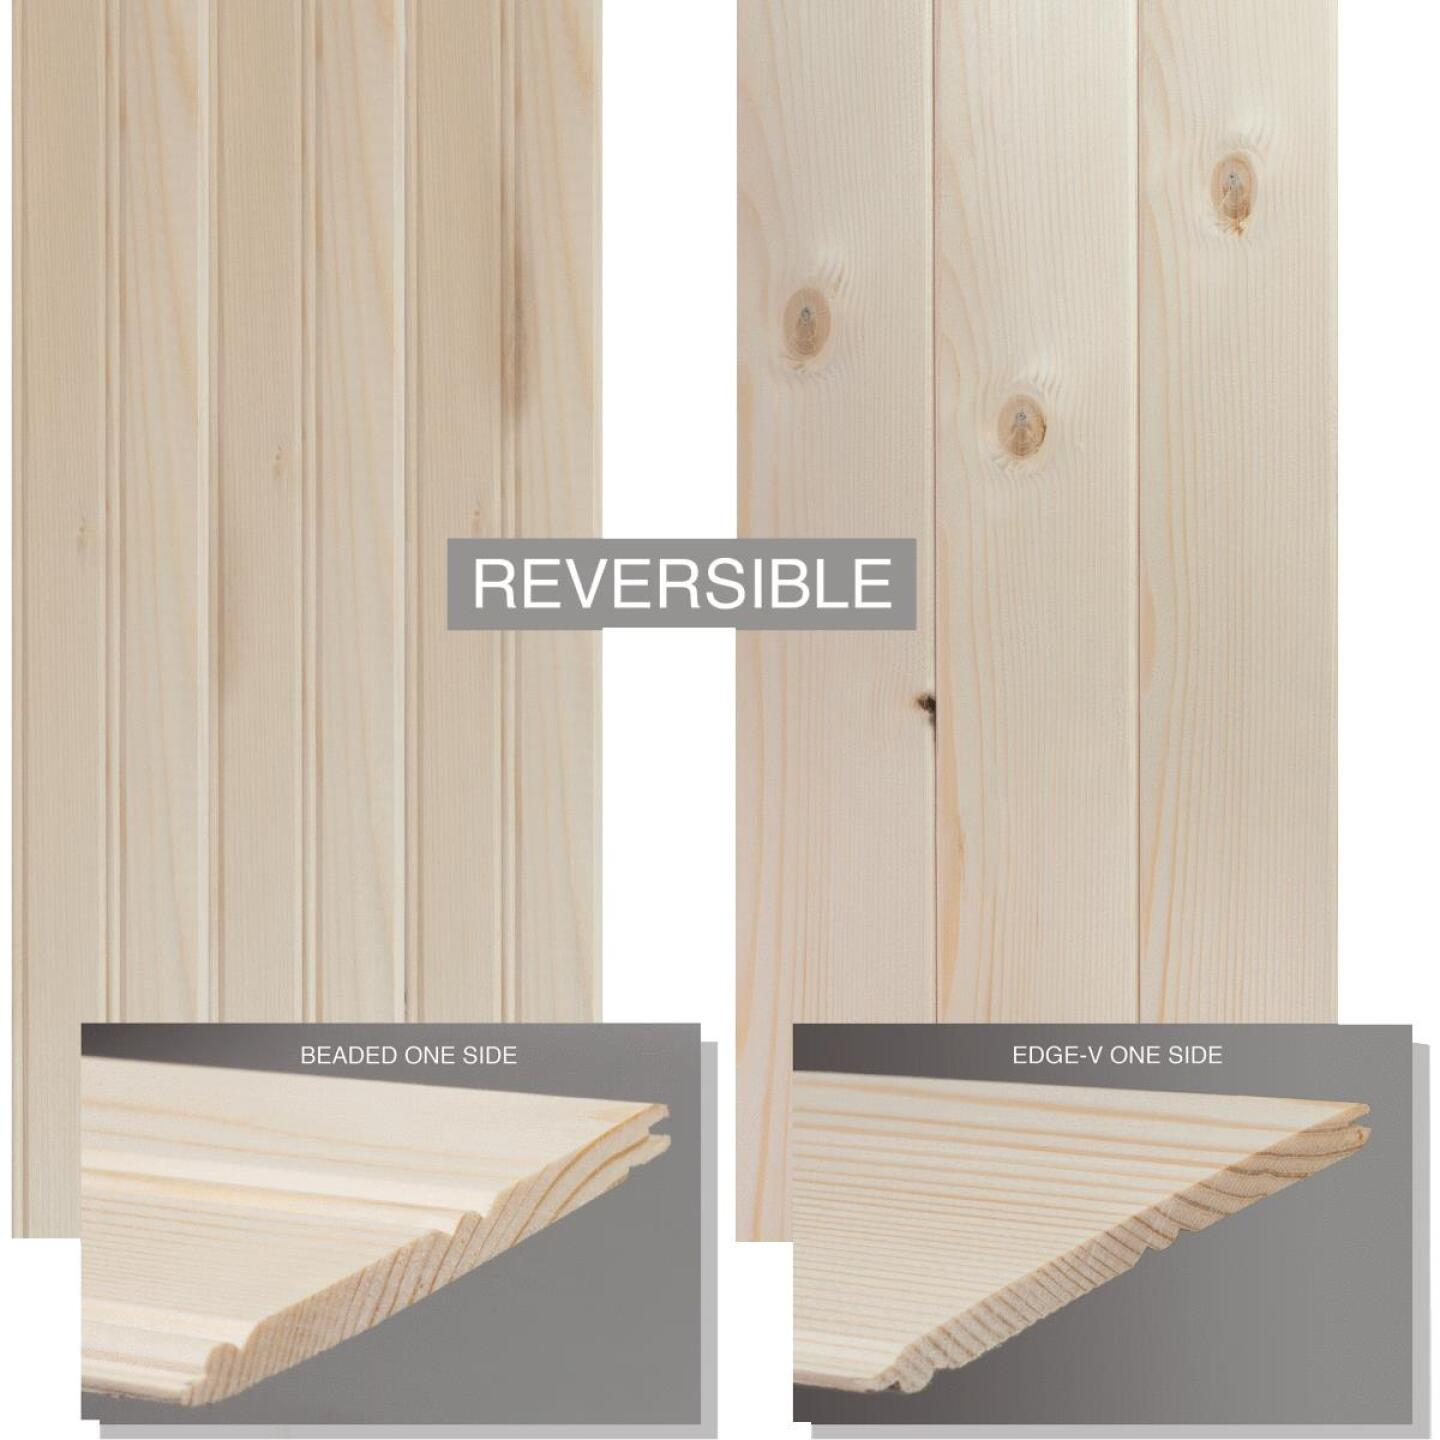 Global Product Sourcing 3-1/2 In. W. x 8 Ft. L. x 1/4 In. Thick Knotty Pine Reversible Profile Wall Plank (6-Pack) Image 3